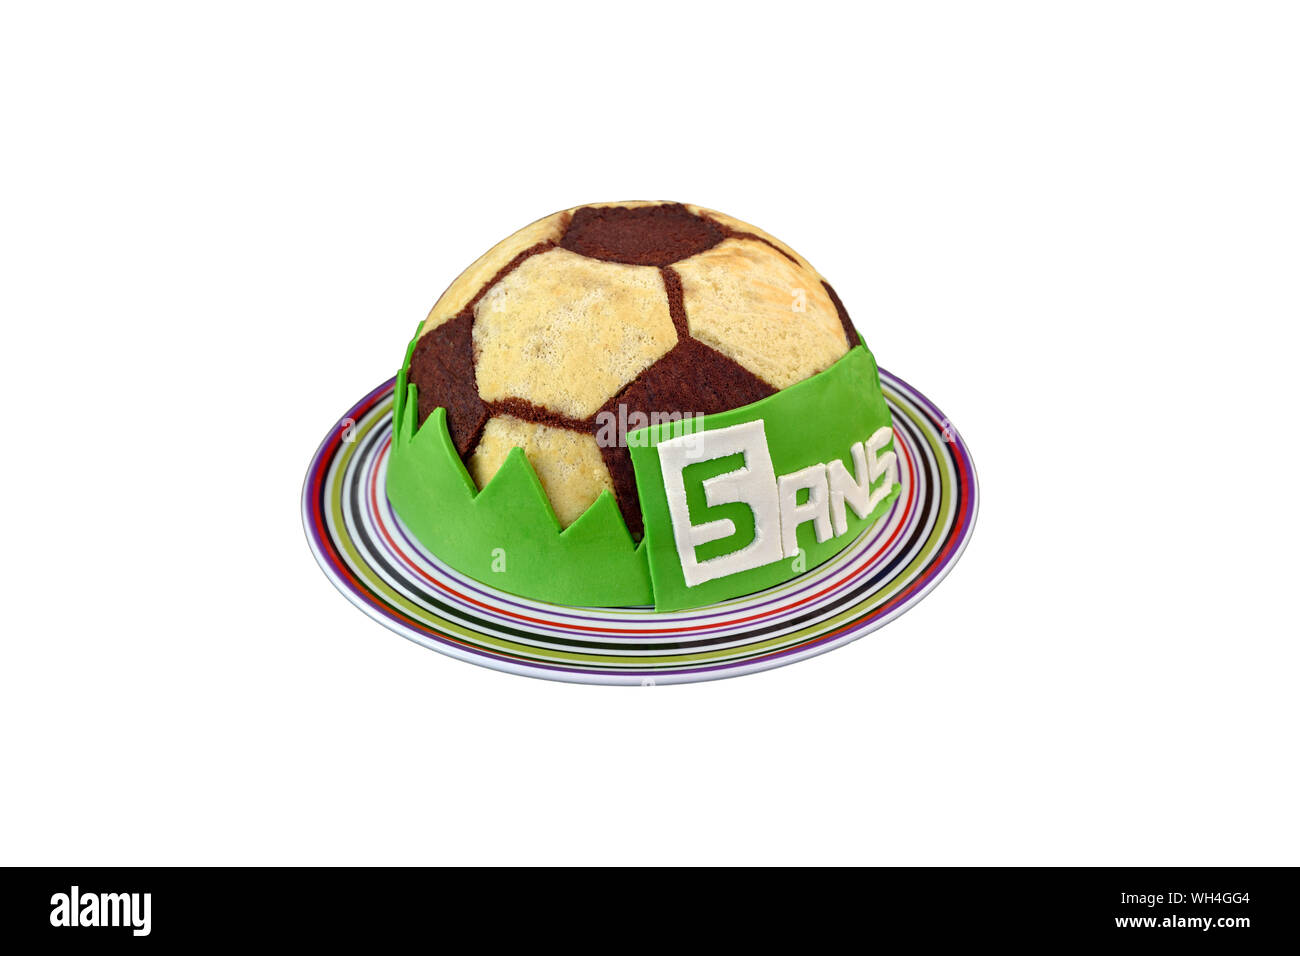 Admirable Beautiful Soccer Ball Birthday Cake For The Fifth Anniversary 5 Funny Birthday Cards Online Inifodamsfinfo